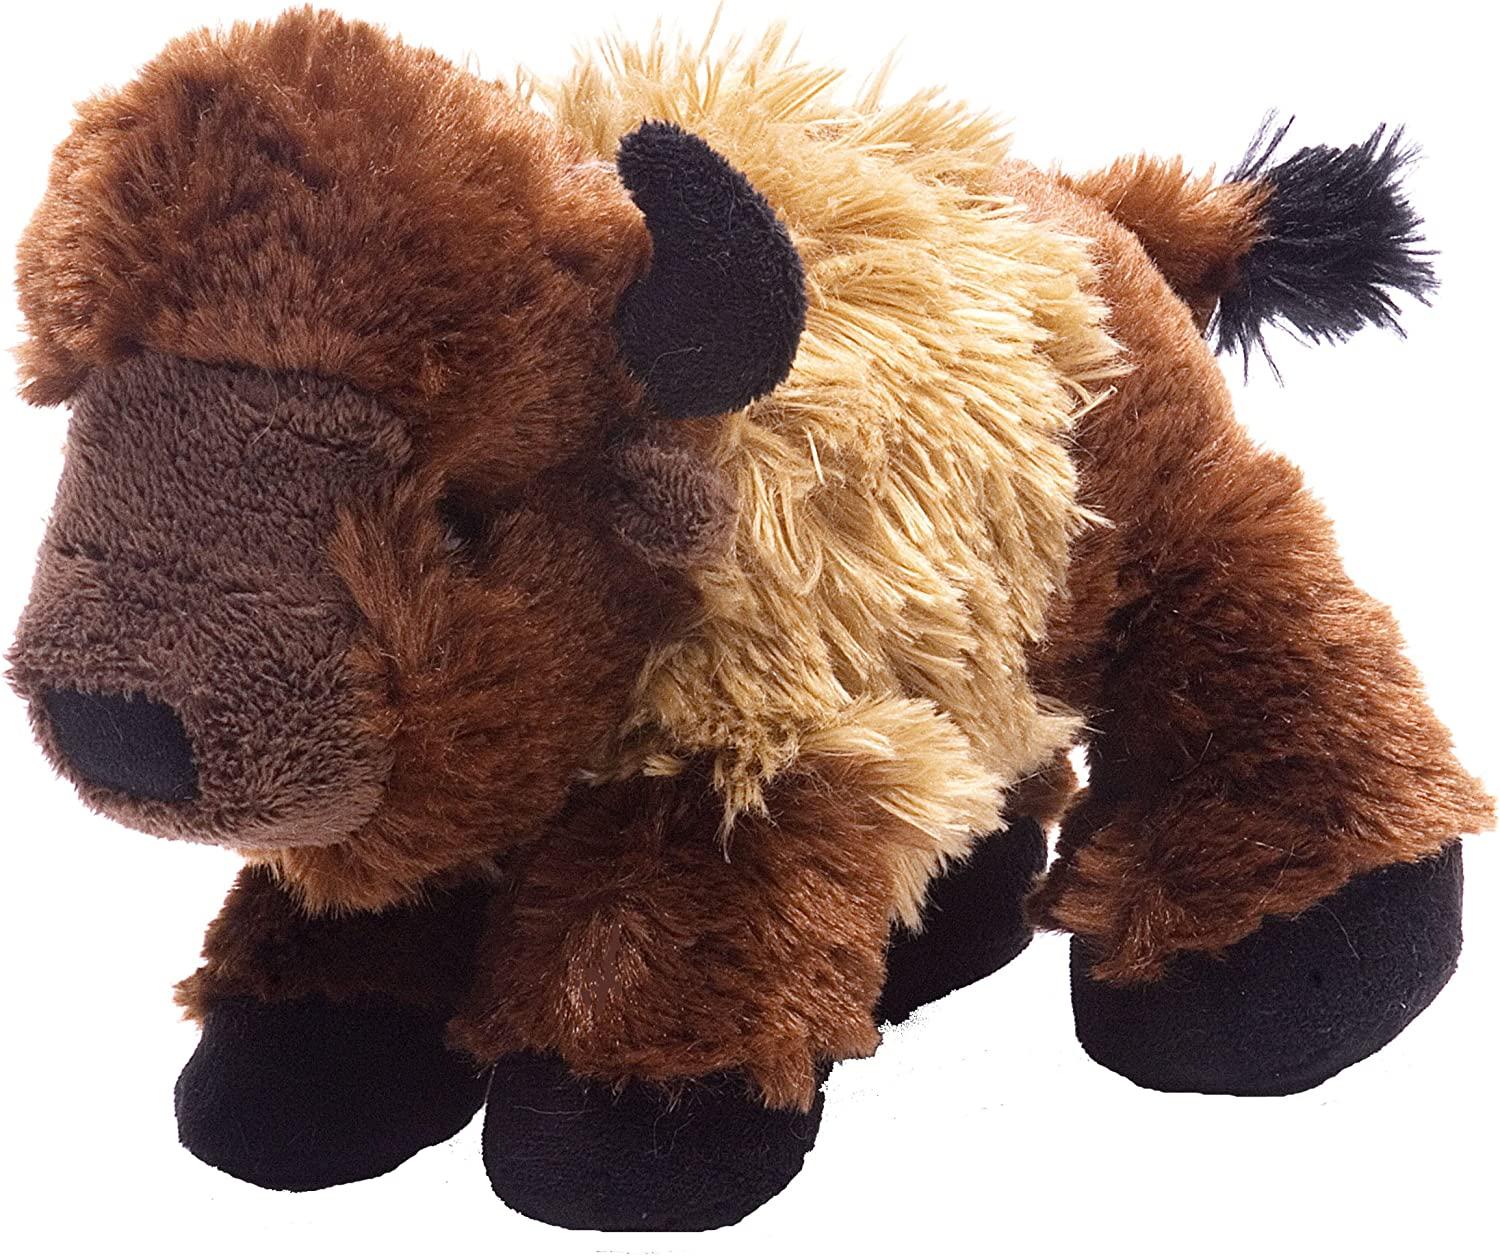 Cuddly Toy 18 cm Gifts for Kids Wild Republic 16239 African Elephant Hugems Soft